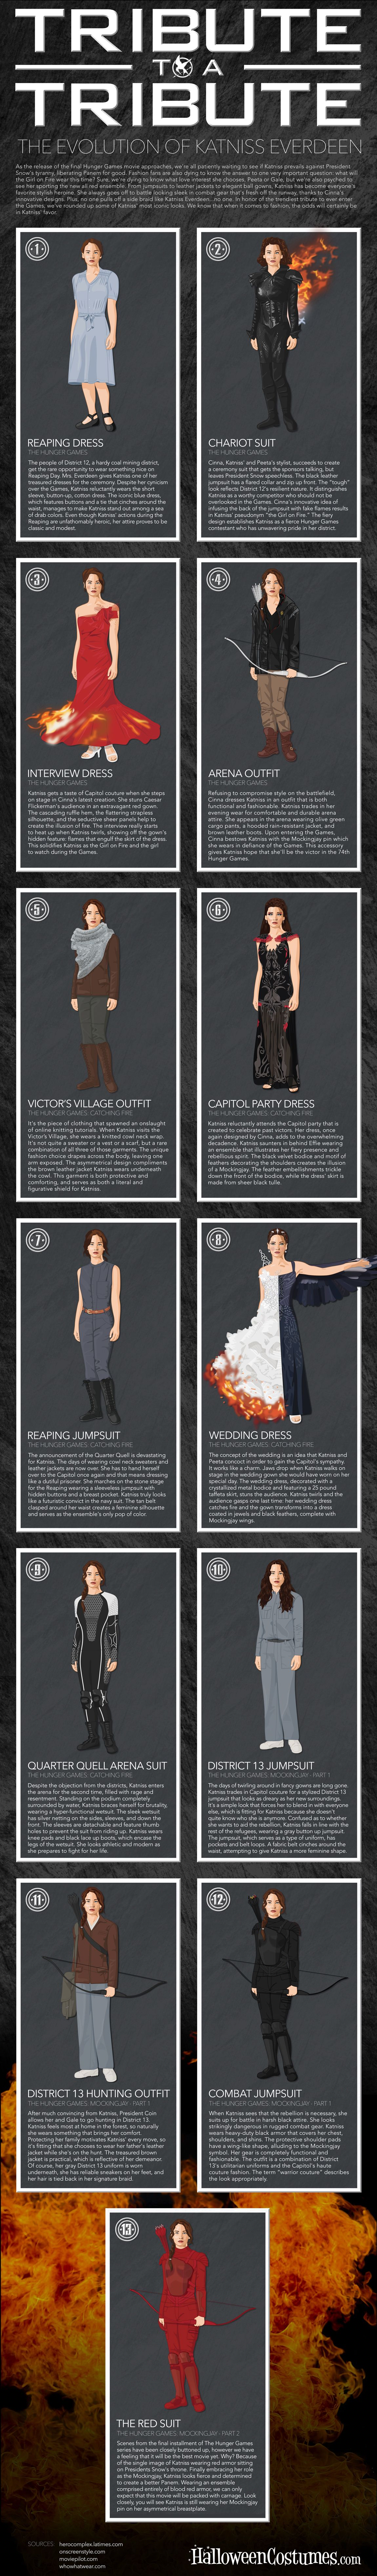 Tribute To A Tribute The Evolution Of Katniss Everdeen Infographic